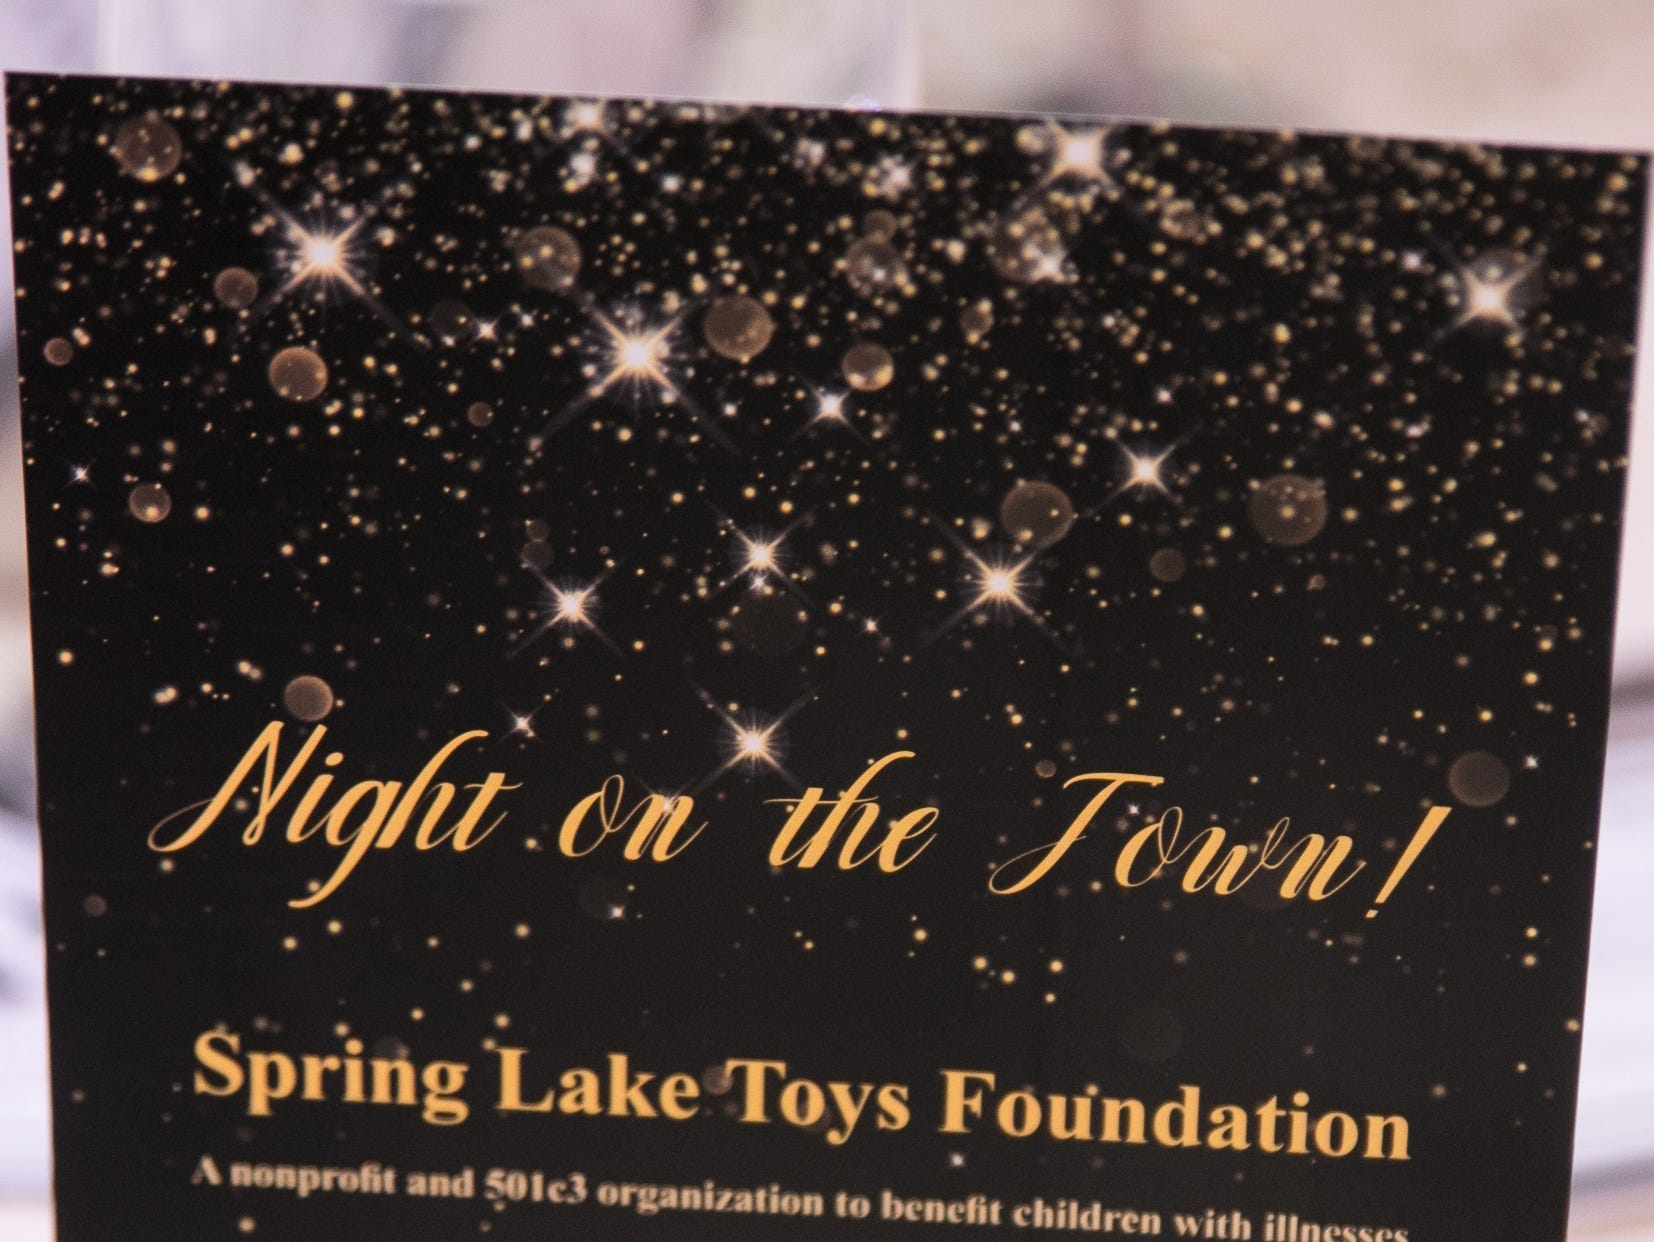 Spring Lake Toys Foundation held it's Night on the Town Gala at Macaluso's in Hawthorne. Money raised benefits children with illnesses to assist in all their financial needs. 03/01/2019